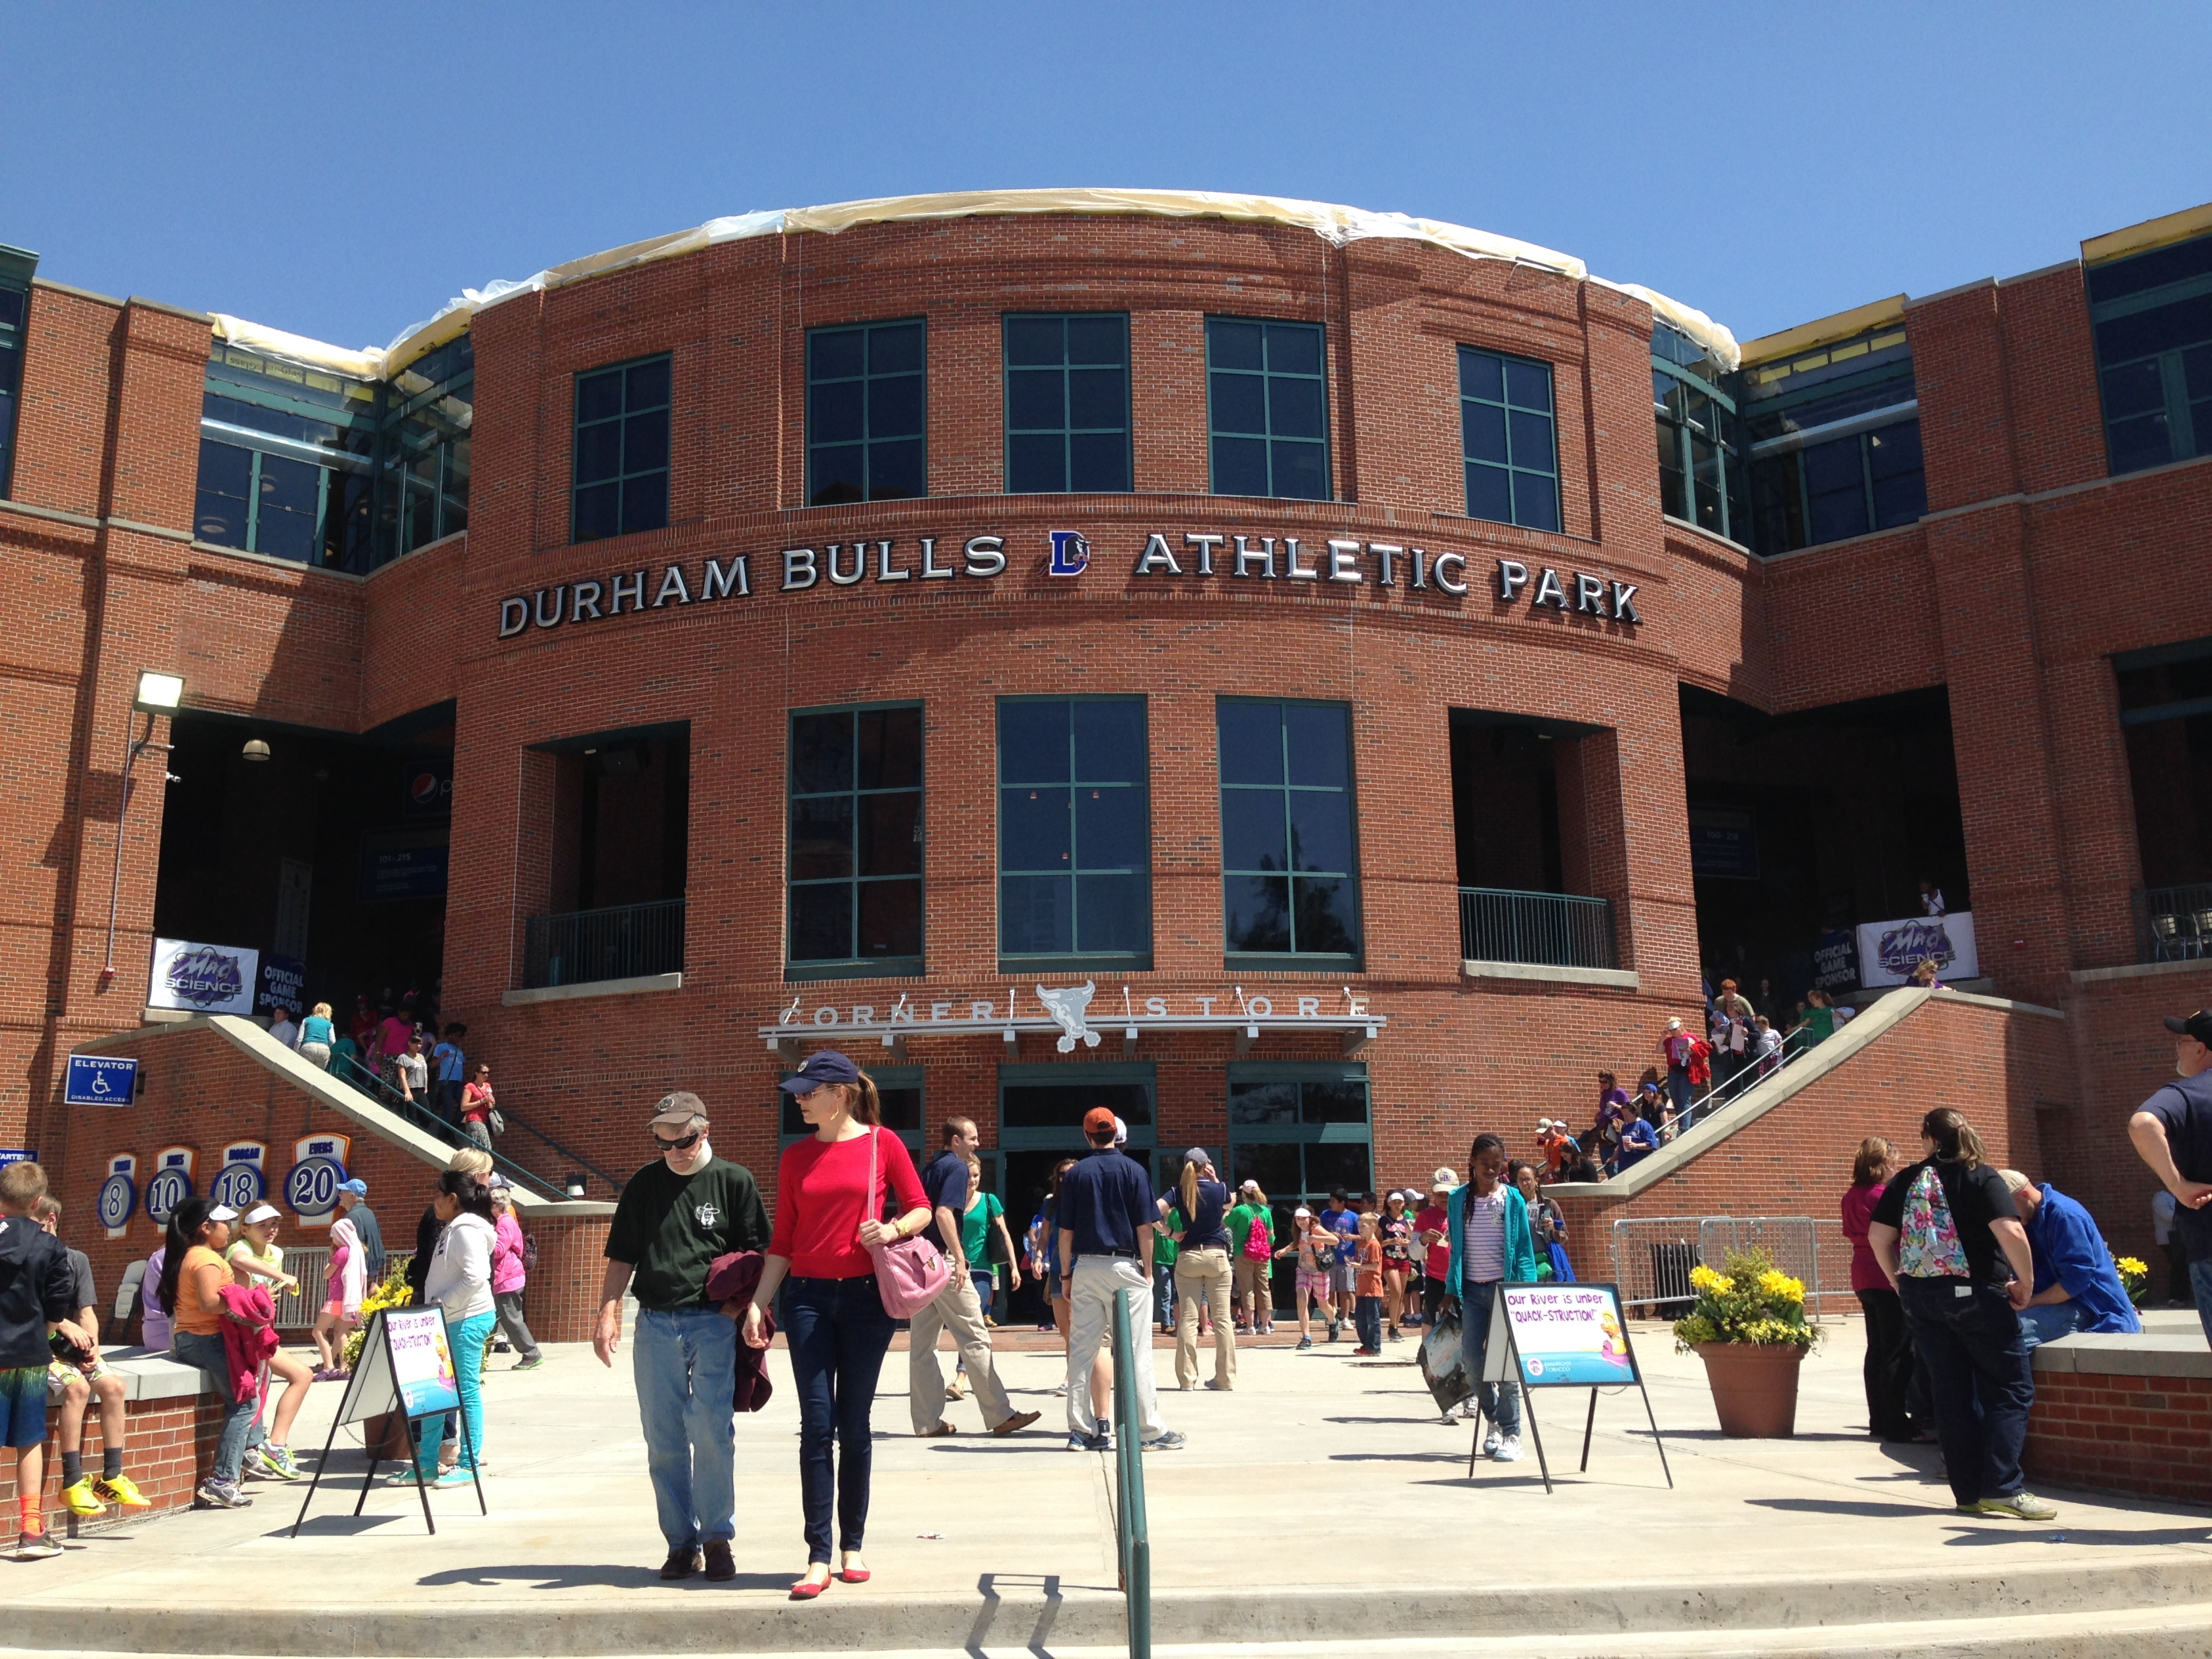 Durham Bulls Athletic Park - Exterior